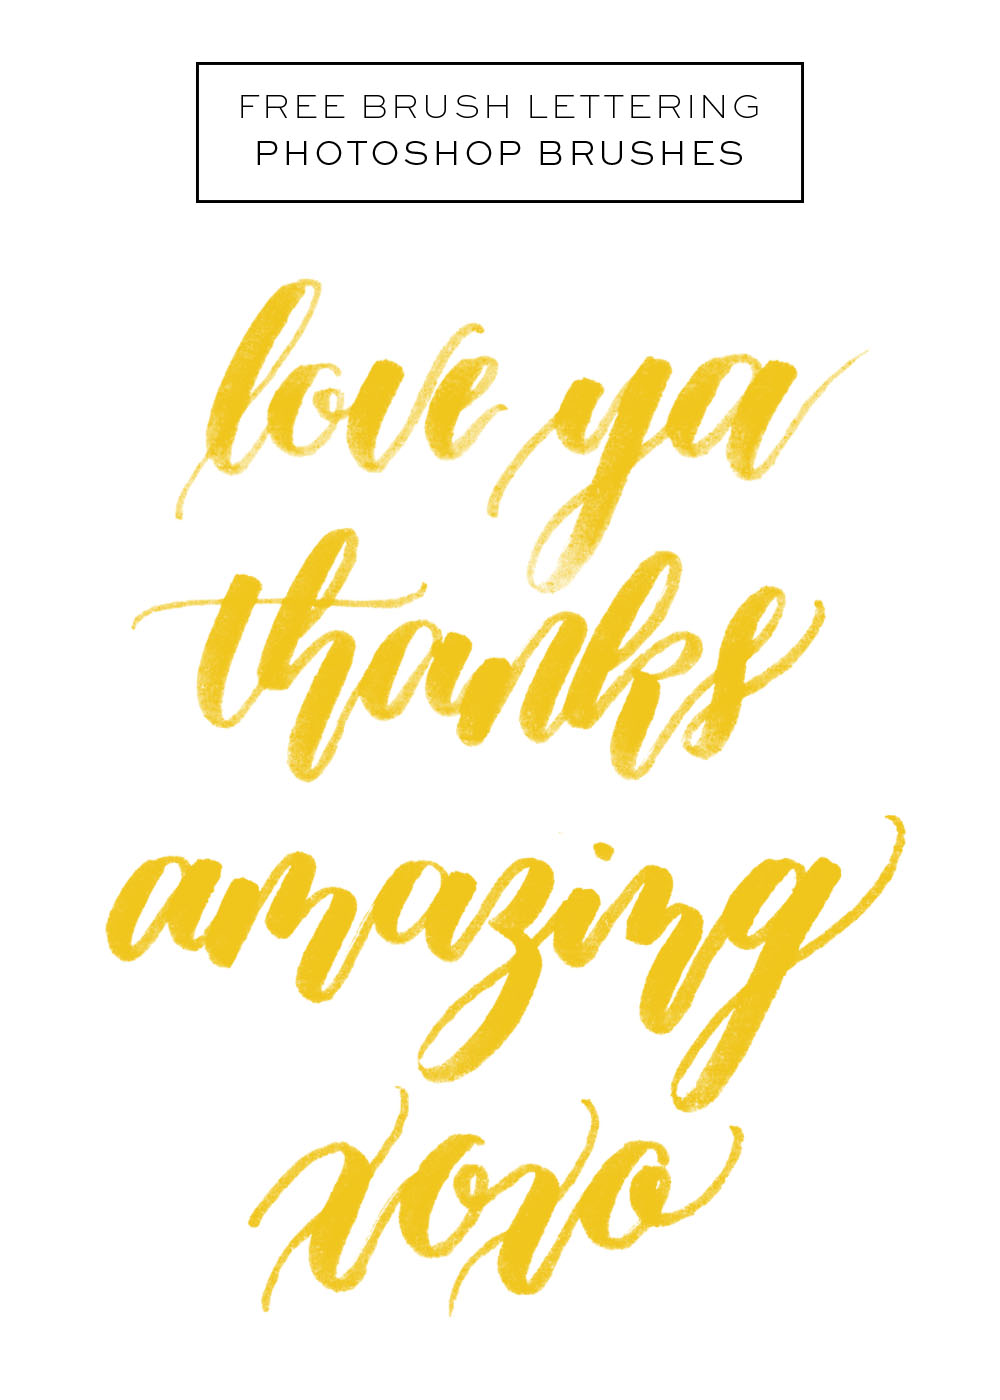 Brush Lettering Photoshop Brushes via Happy Hands Project